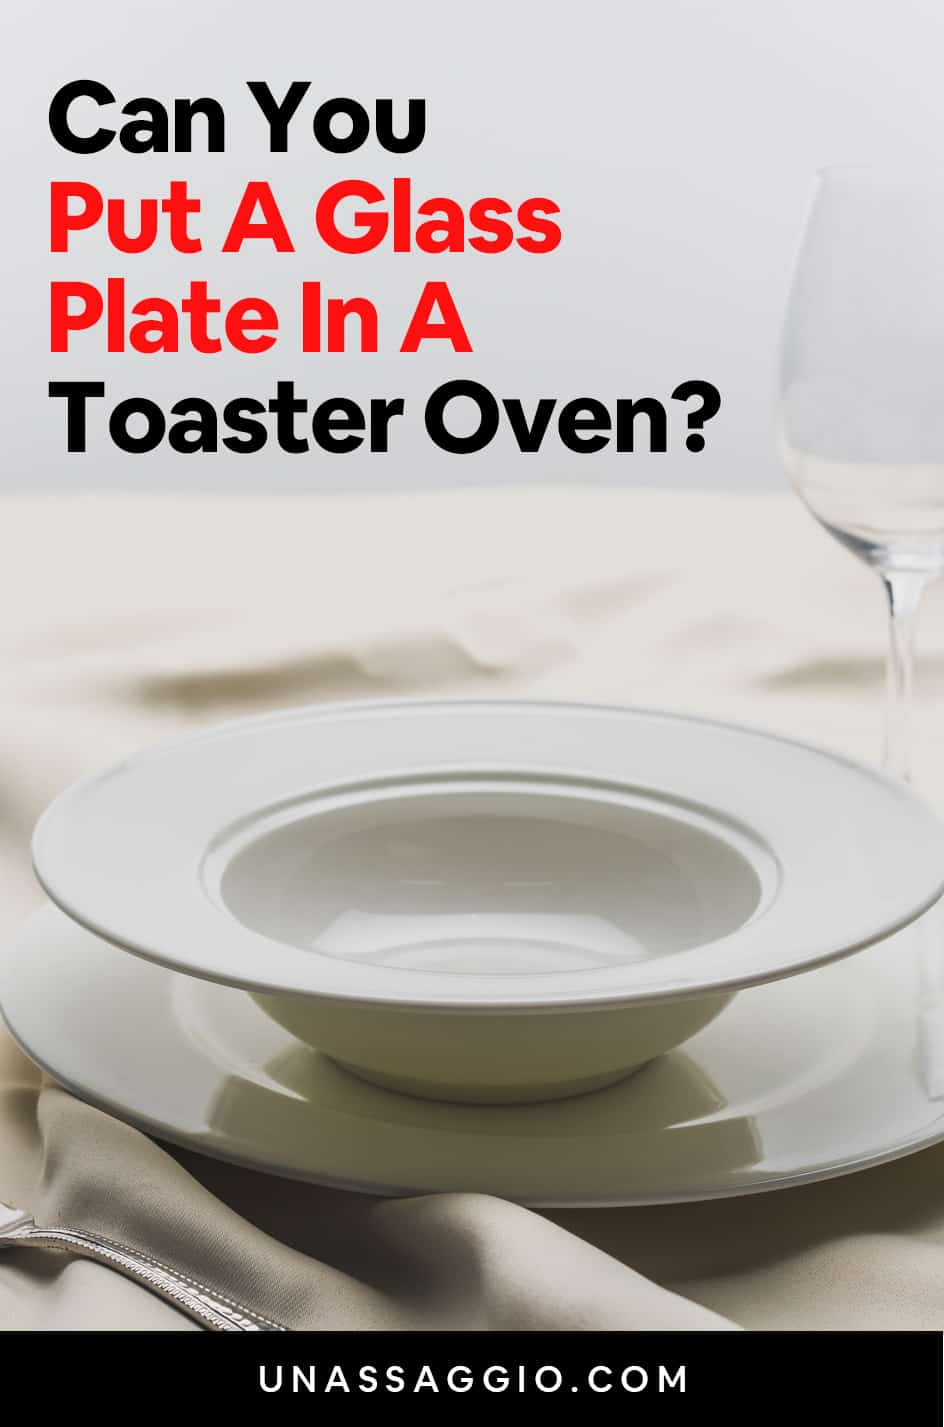 can you put a glass plate in a toaster oven?